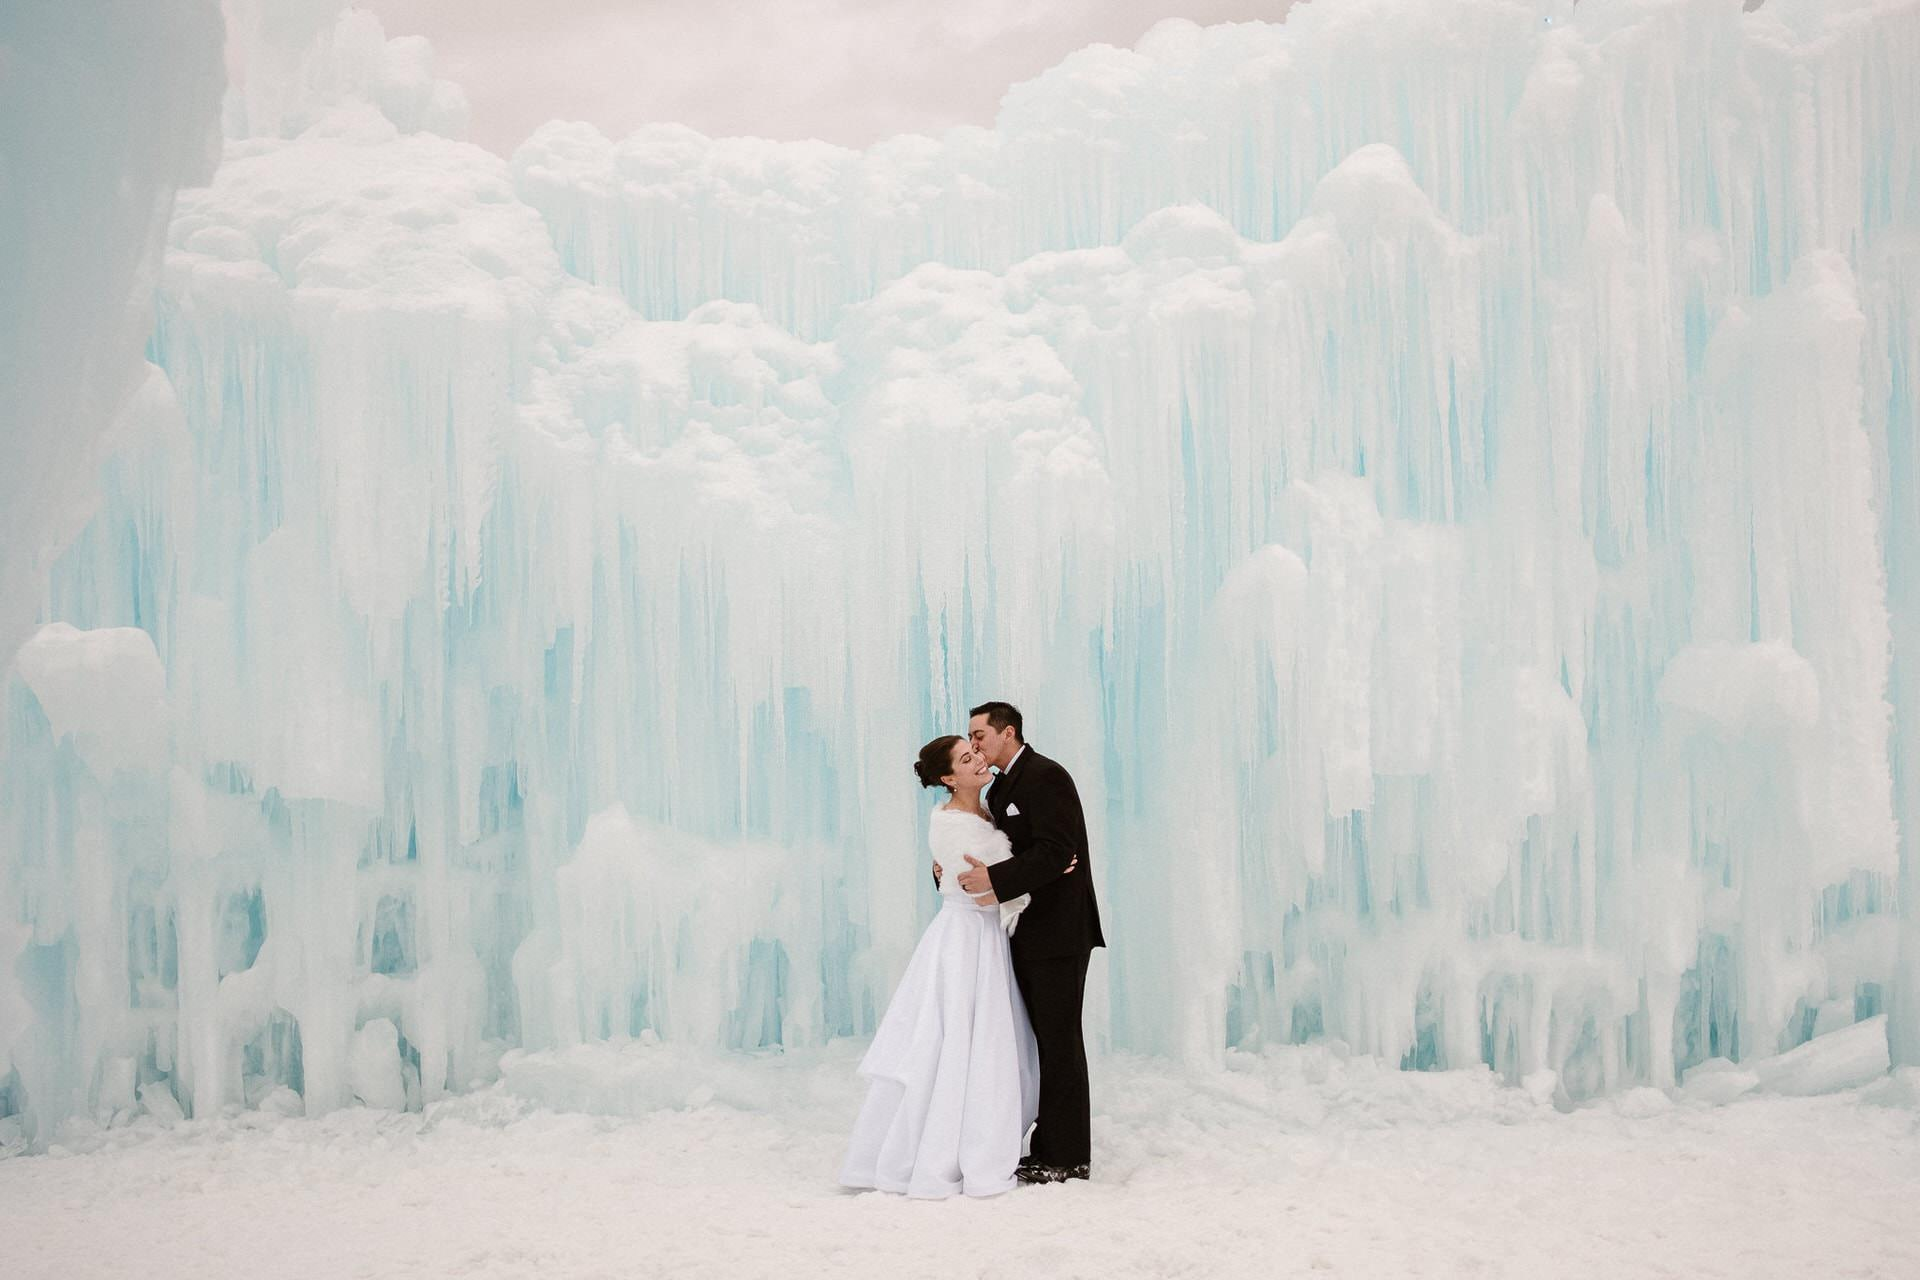 Ice Castles Dillon, Colorado wedding photographer, winter wedding, ice hotel wedding photographer